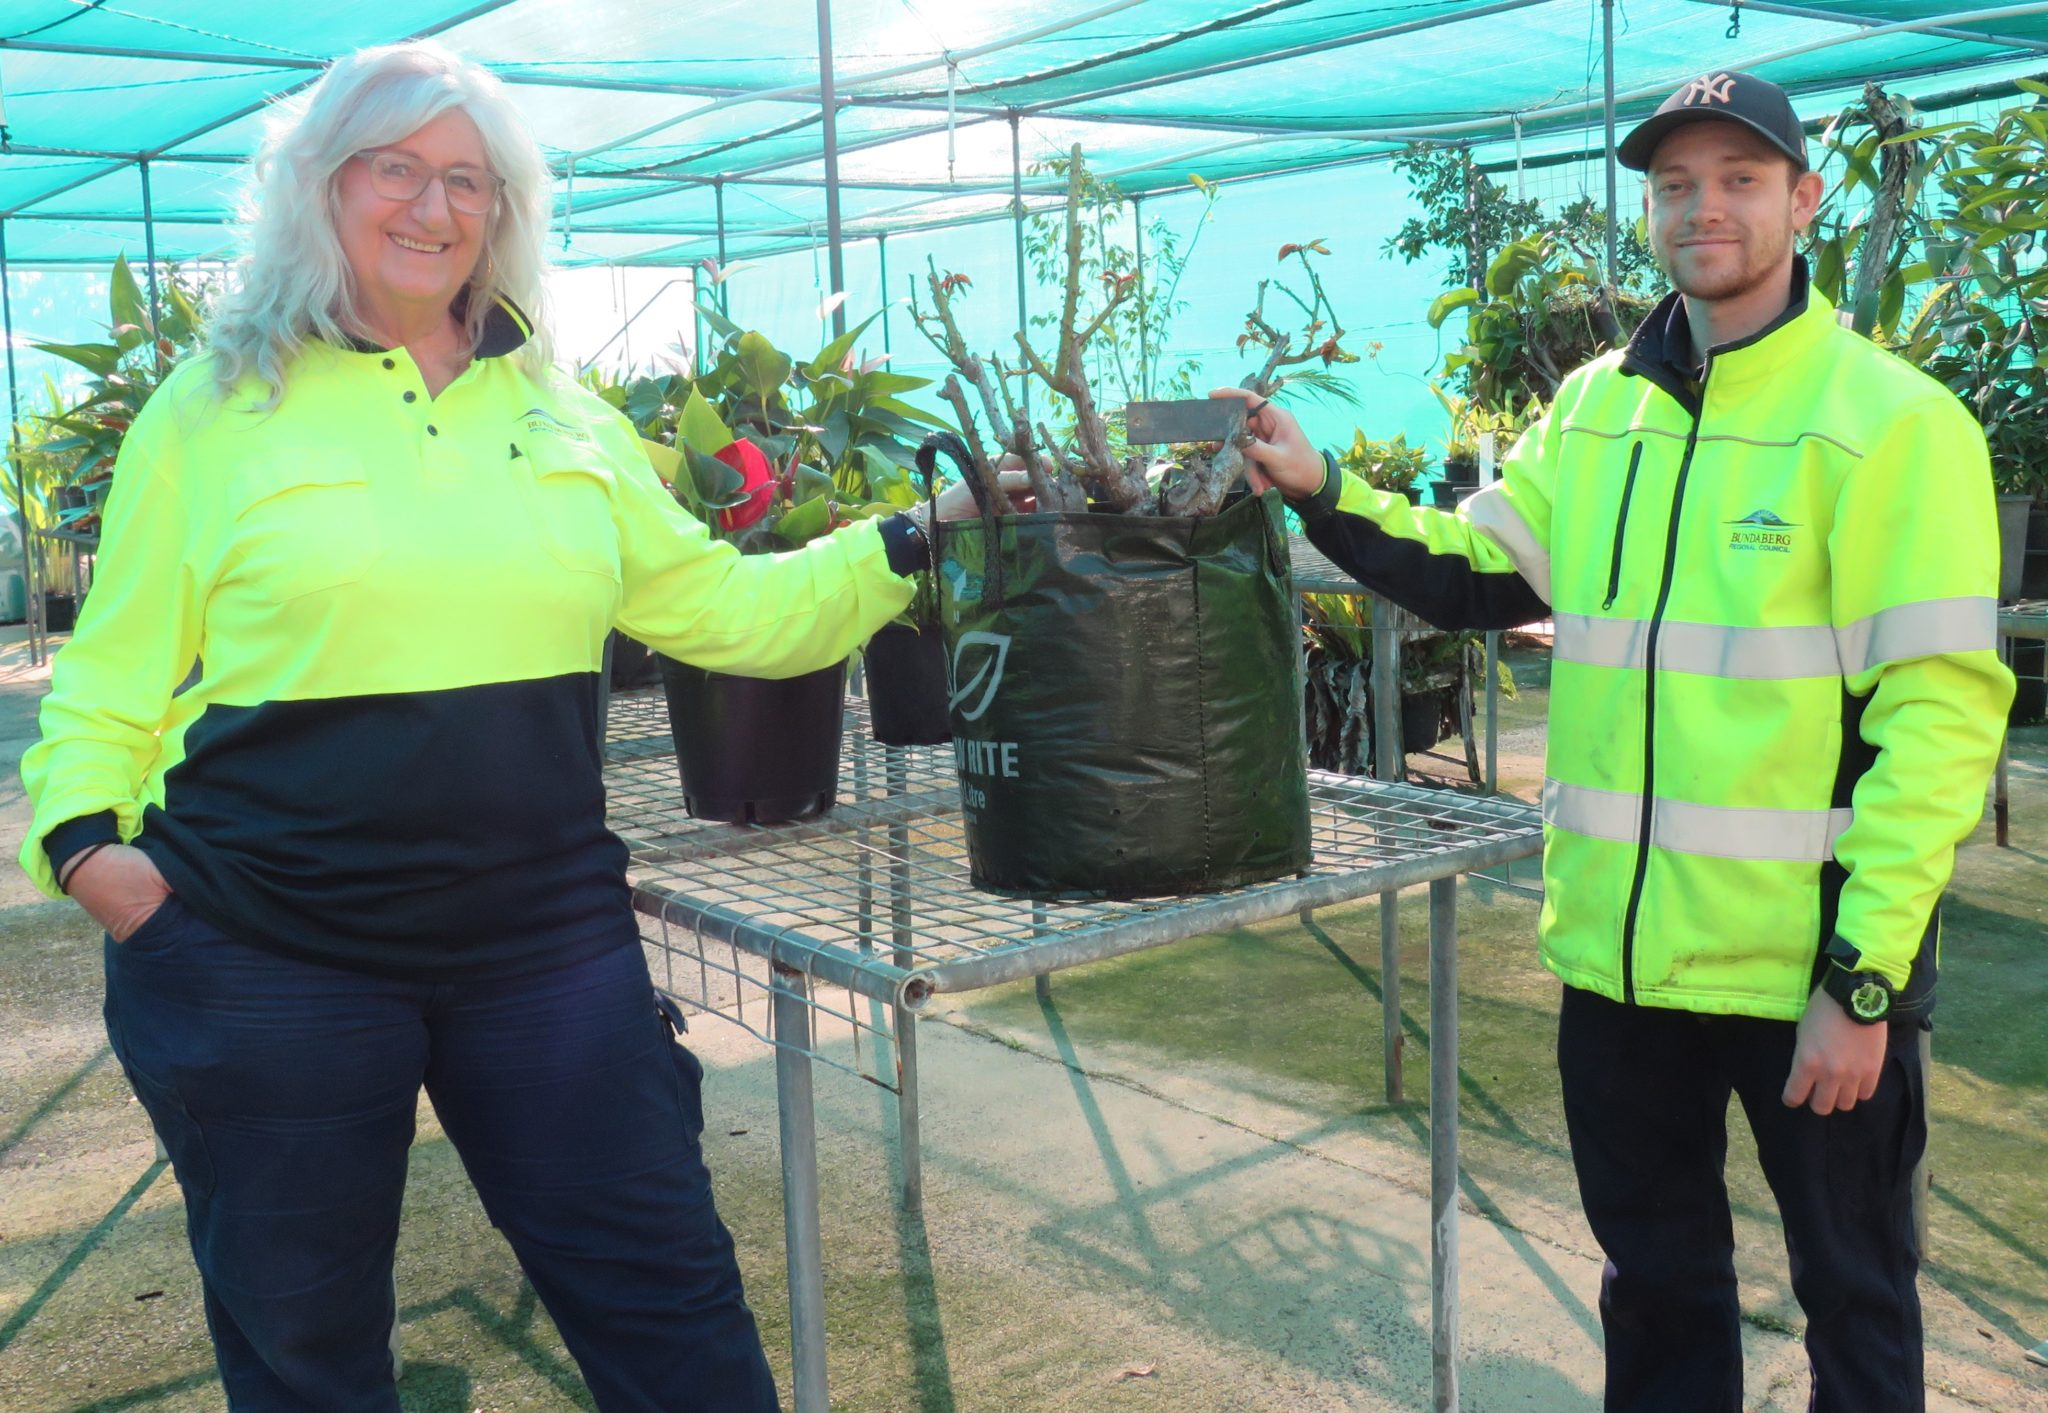 Nursery Manager Diane Southwell and Horticulture trainee Darien Doyle with one of the rose bushes at the Botanic Gardens Nursery.